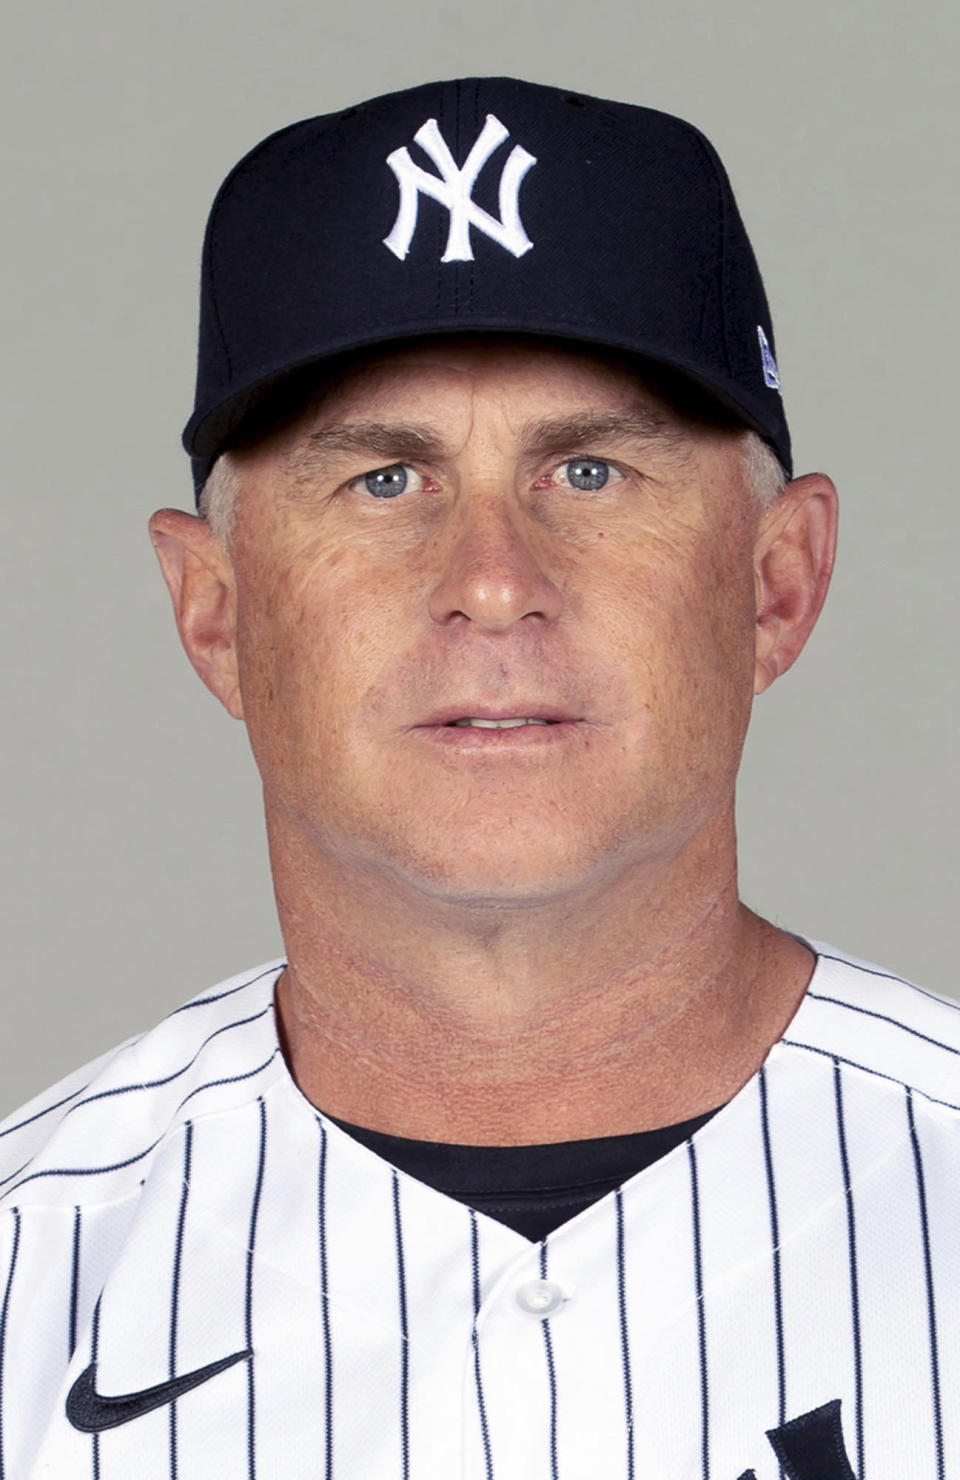 This is a 2021 photo of Phil Nevin of the New York Yankees baseball team. The Yankees announced Tuesday, May 11, 2021, that third base coach Phil Nevin, who is fully vaccinated, has tested positive for the coronavirus. Nevin is currently under quarantine protocol in Tampa. Under Major League Baseball's guidance and advice, and with its assistance, additional testing and contact tracing are ongoing. (Mike Carlson/MLB Photos via AP, File)